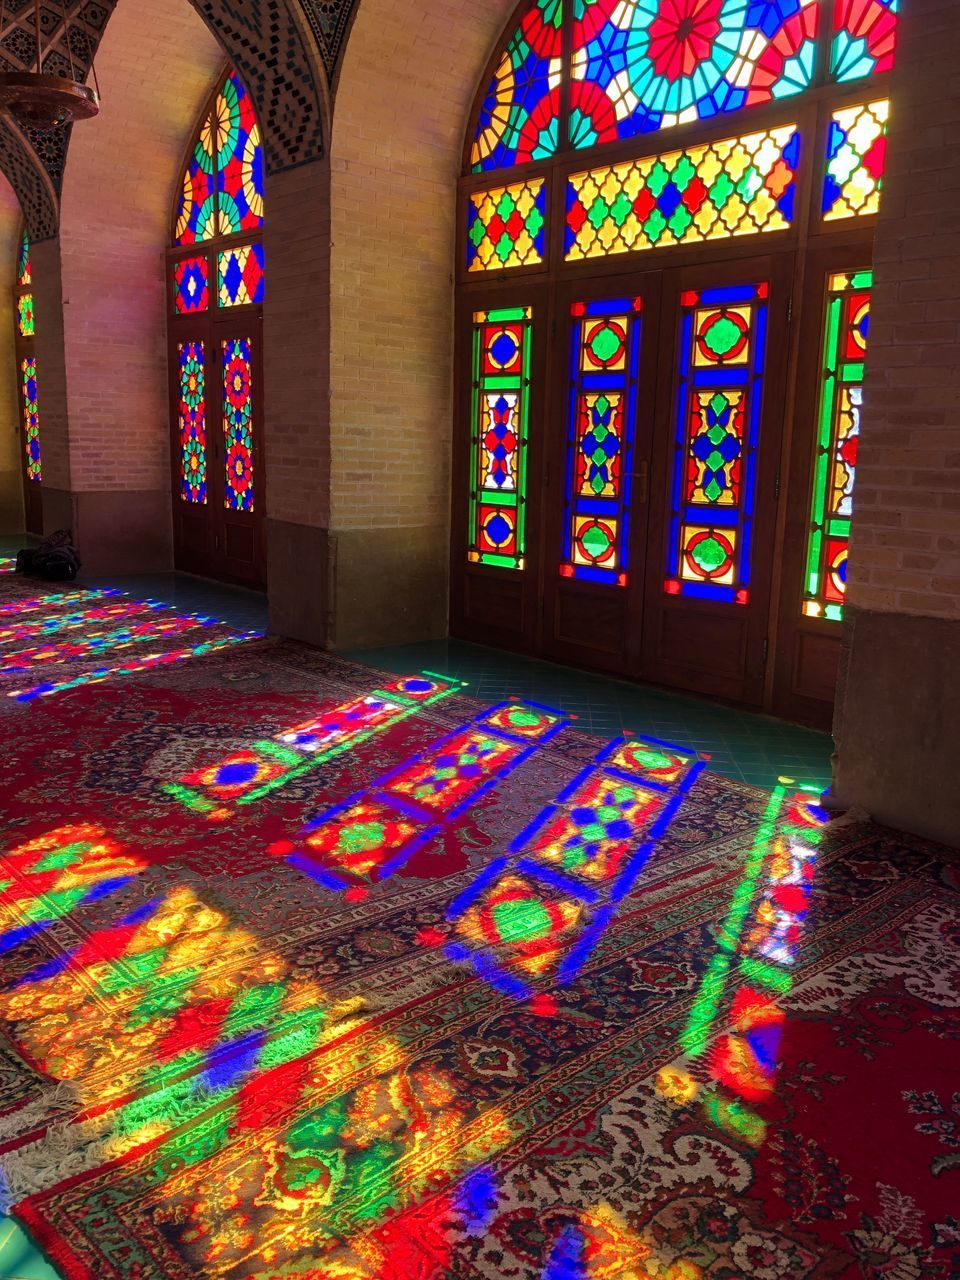 multi colored, art and craft, stained glass, indoors, pattern, creativity, no people, architecture, religion, glass, place of worship, window, belief, built structure, building, carpet - decor, spirituality, design, floral pattern, ornate